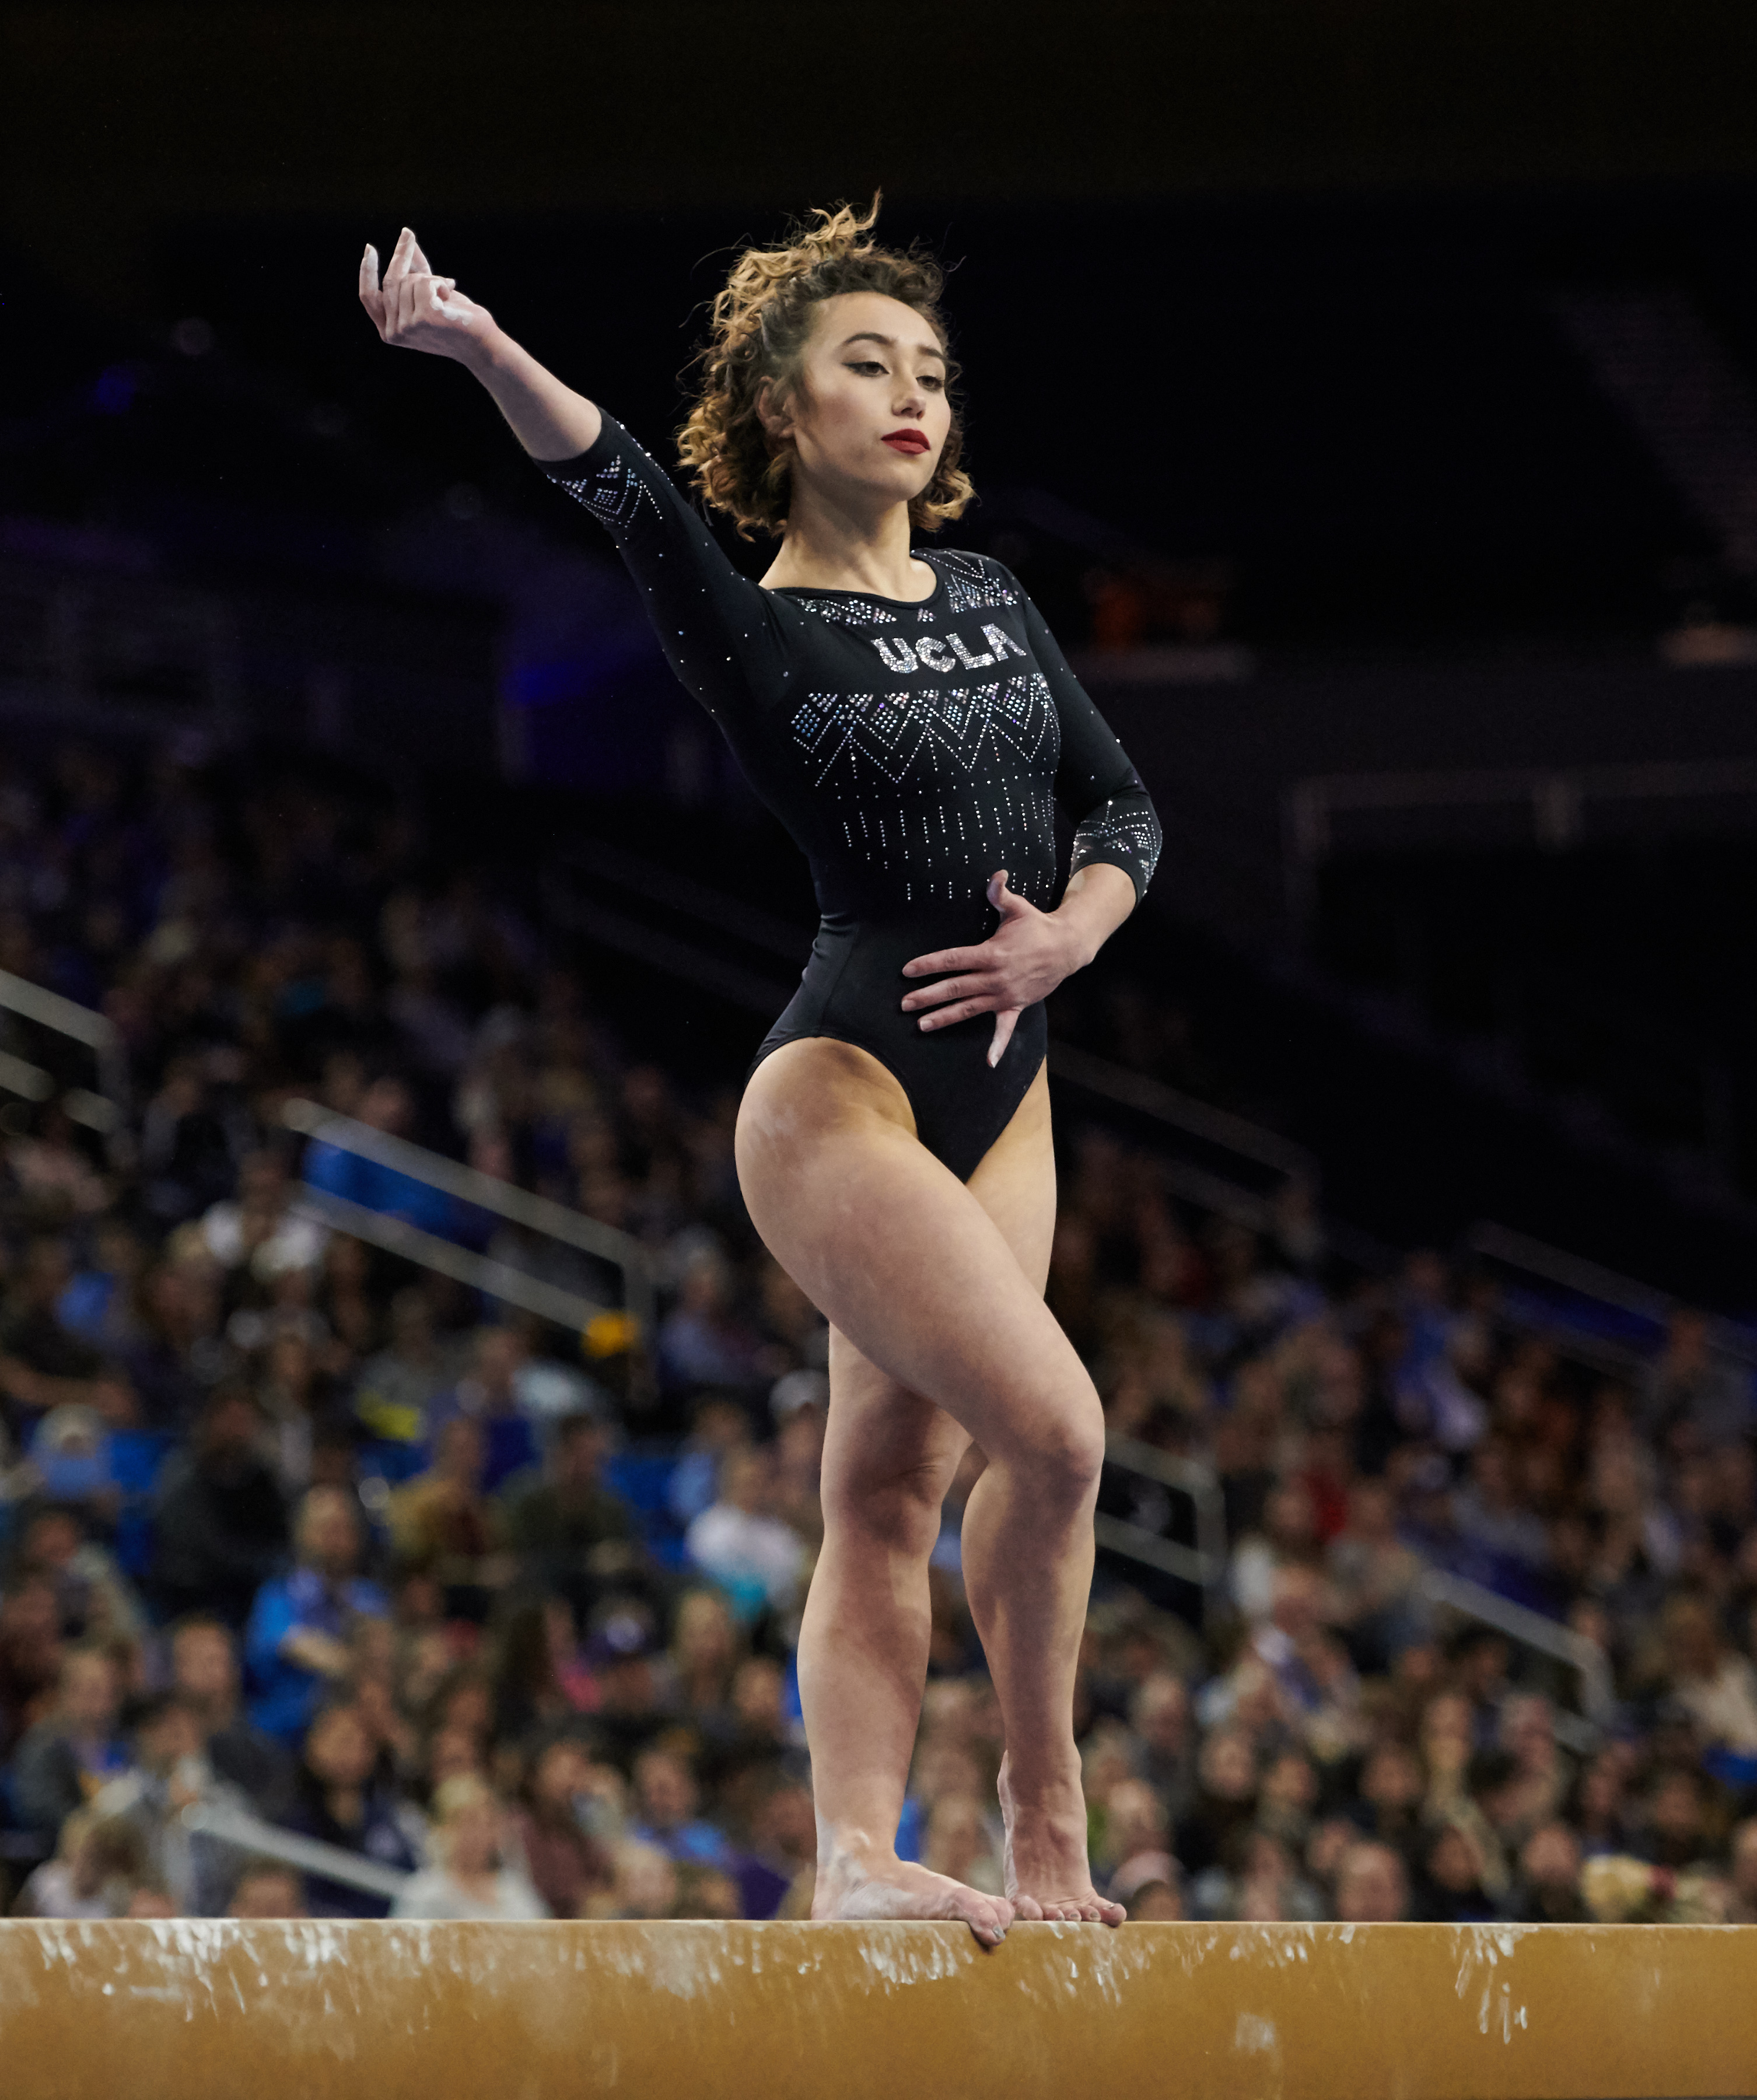 UCLA Athletics - 2019 UCLA Women's Gymnastics versus the University of Nebraska Cornhuskers. Pauley Pavilion, UCLA, Los Angeles, CA. January 4th, 2019 Copyright Don Liebig/ASUCLA 190104_GYM_1143.NEF